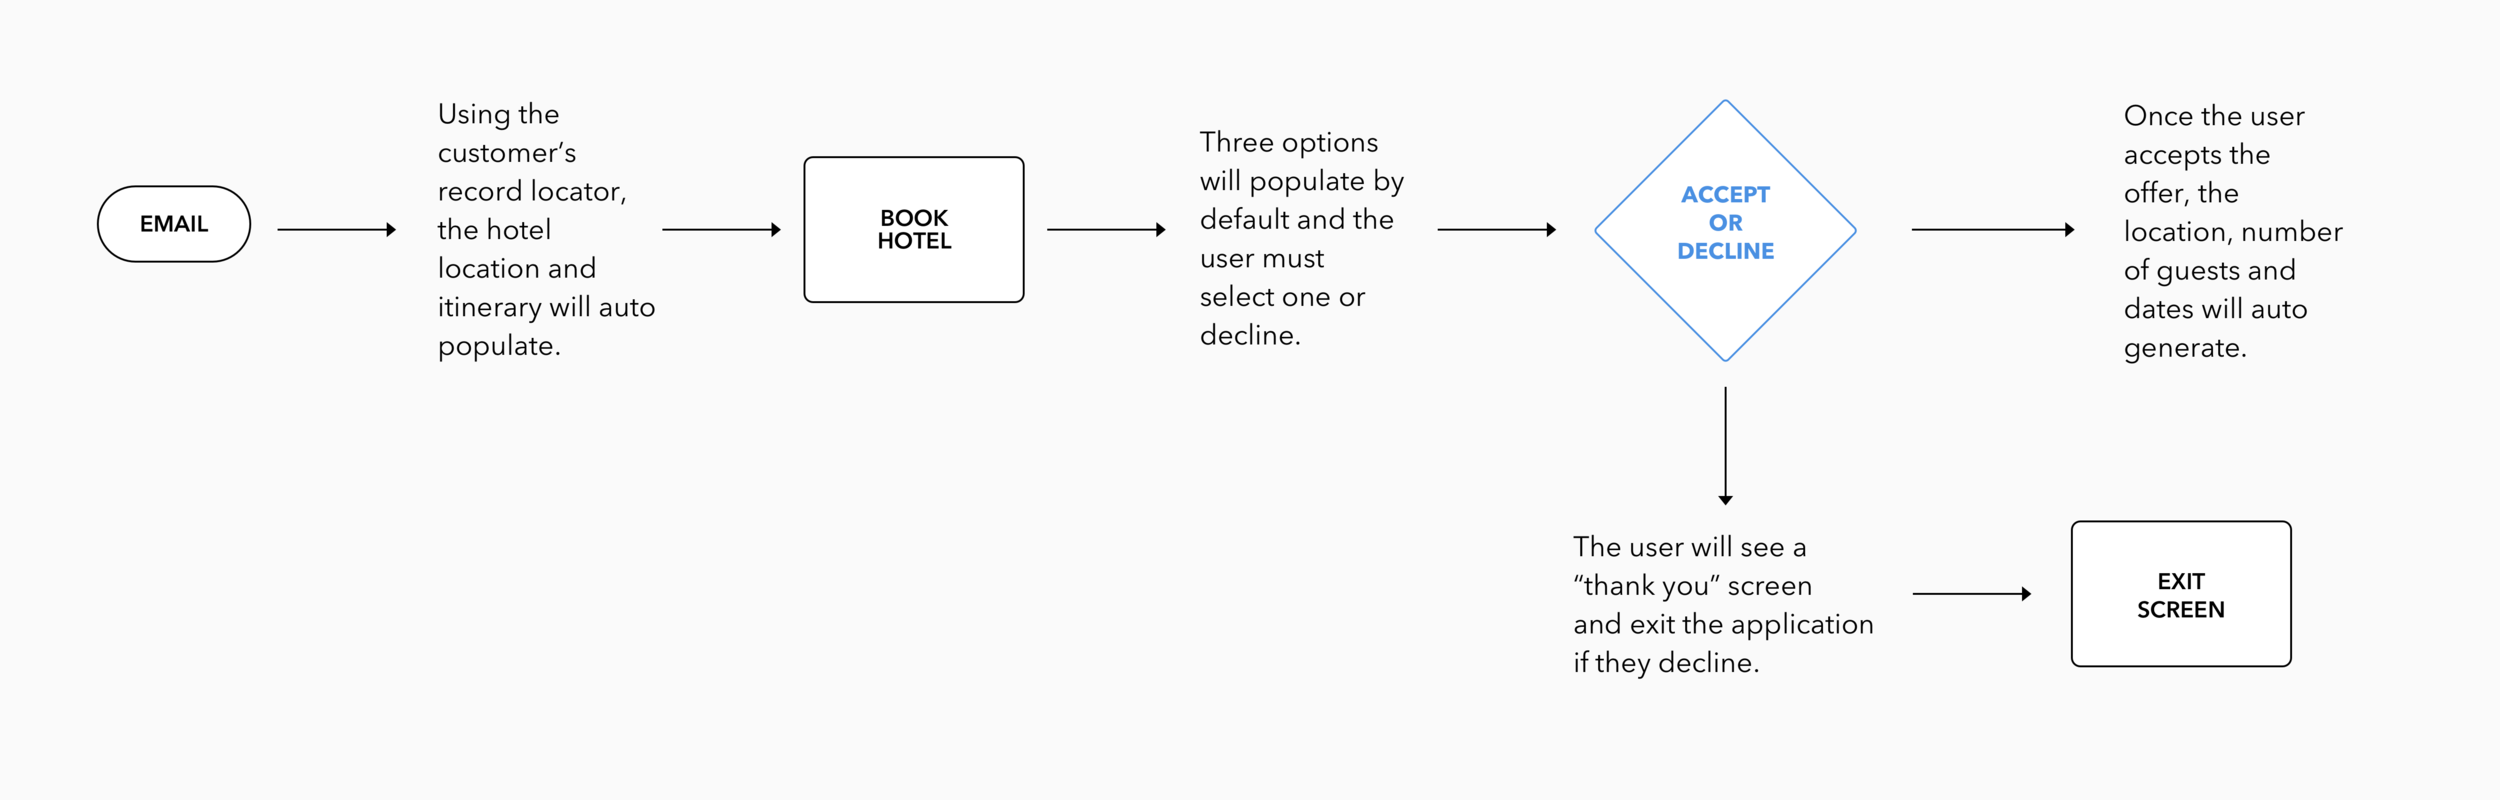 User Flow 1: Users will land at the booking screen and have the option to book a hotel or decline the offer upfront. This section of the flow as totally revised after user testing.